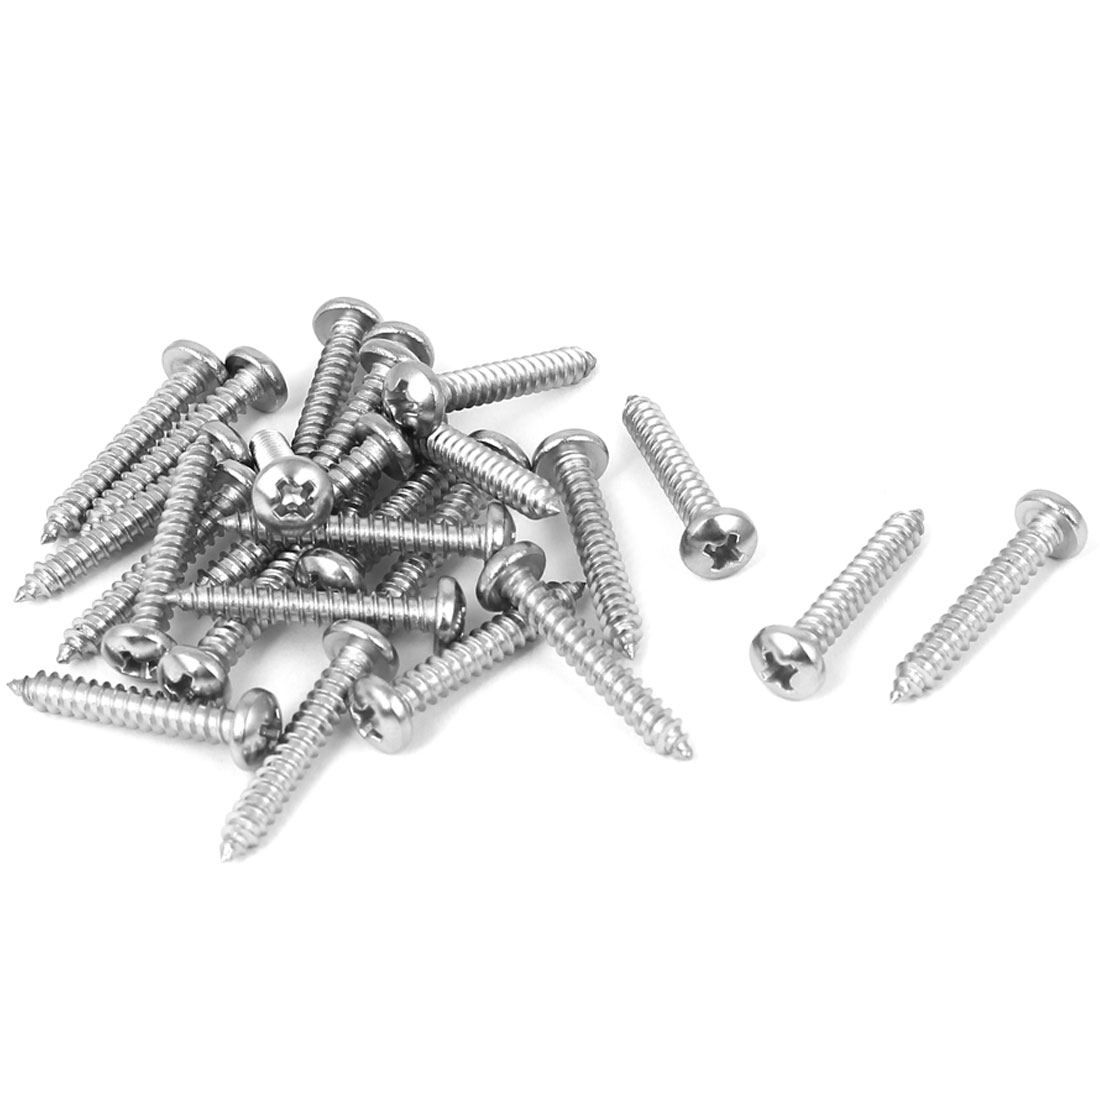 #7 M3.9x25mm Stainless Steel Phillips Round Pan Head Self Tapping Screws 25pcs